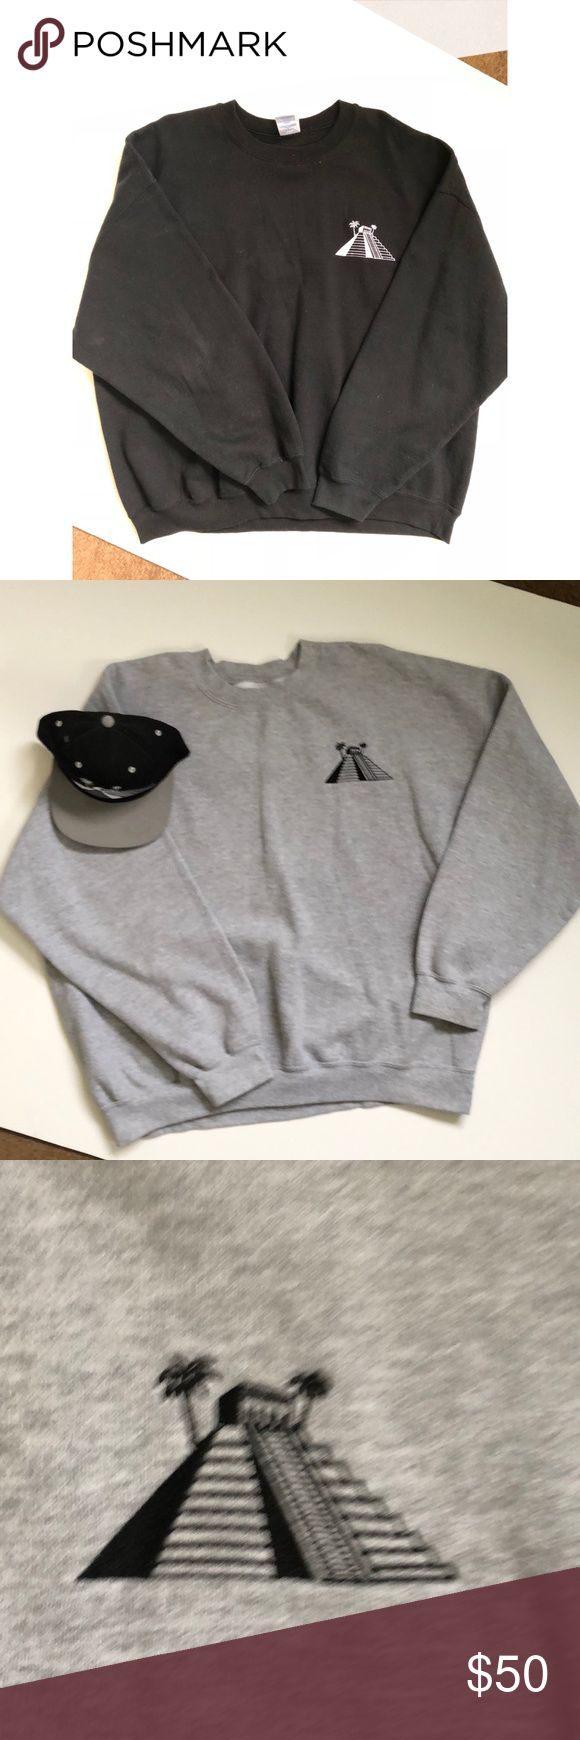 The Cancun Life sweater and snap pack hat bundle Cancun life crew long sleeve sweater with hat 🧢 bundle look good in the spring or late fall with this amazing bundle by chingo bling. Hat has been sign by chingo bling himself.. great for gift or just looking for something new to wear. Make me offer!!! Never know when you may need a sweater this climate!! Thanks for stop by my closet. One sweater is black the other ones is gray. Snap pack hat is one size fit all. 12/24/17 Sweaters Crewneck